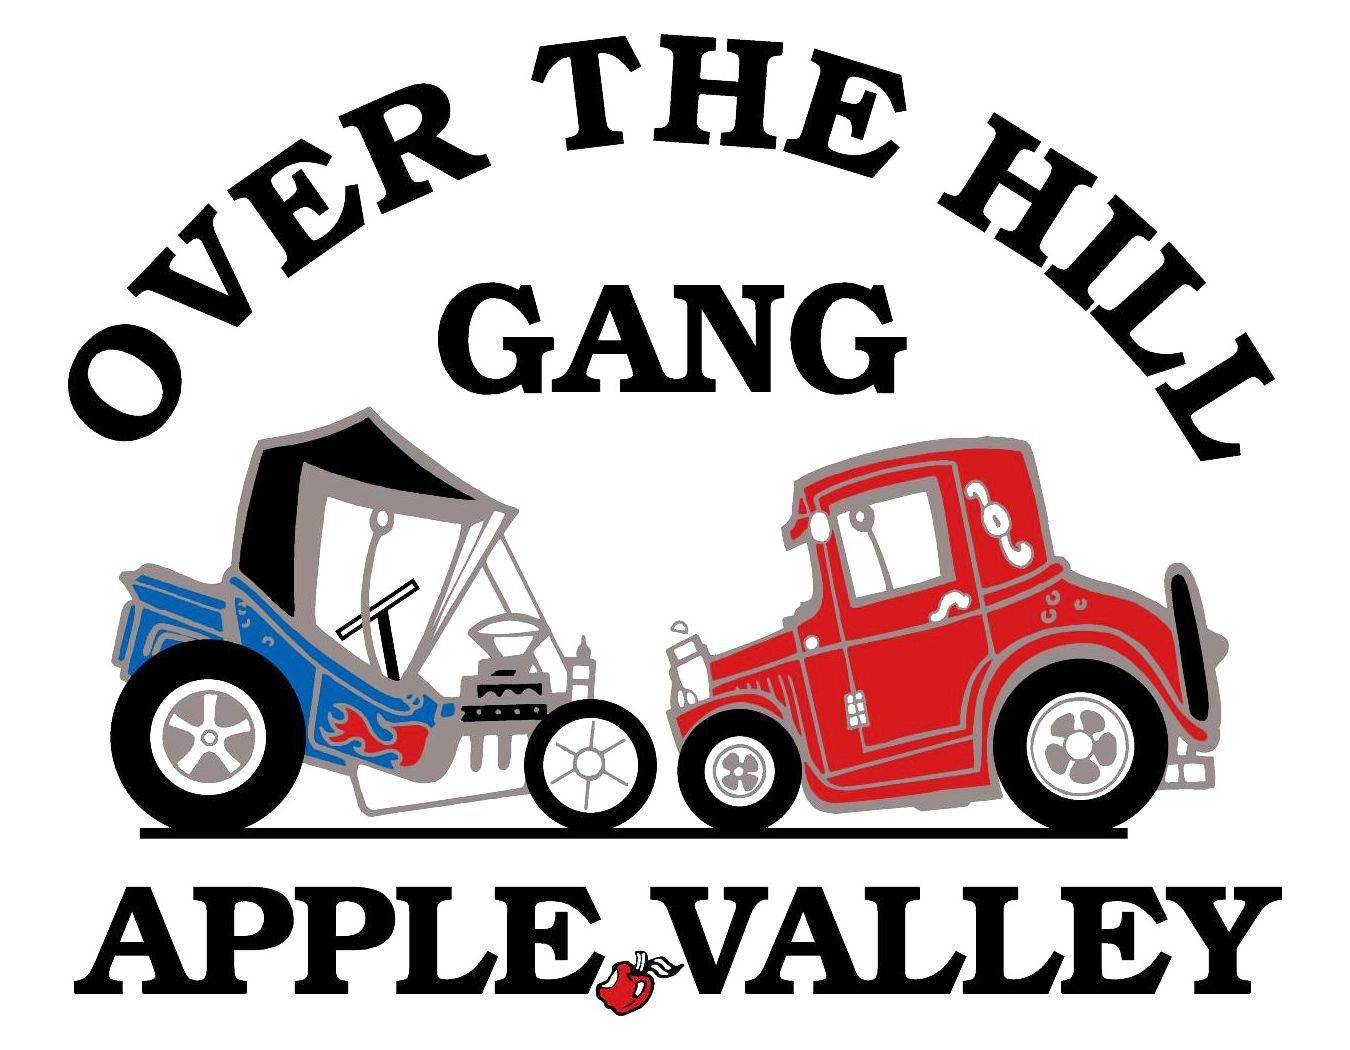 Over the Hill Gang Jackets